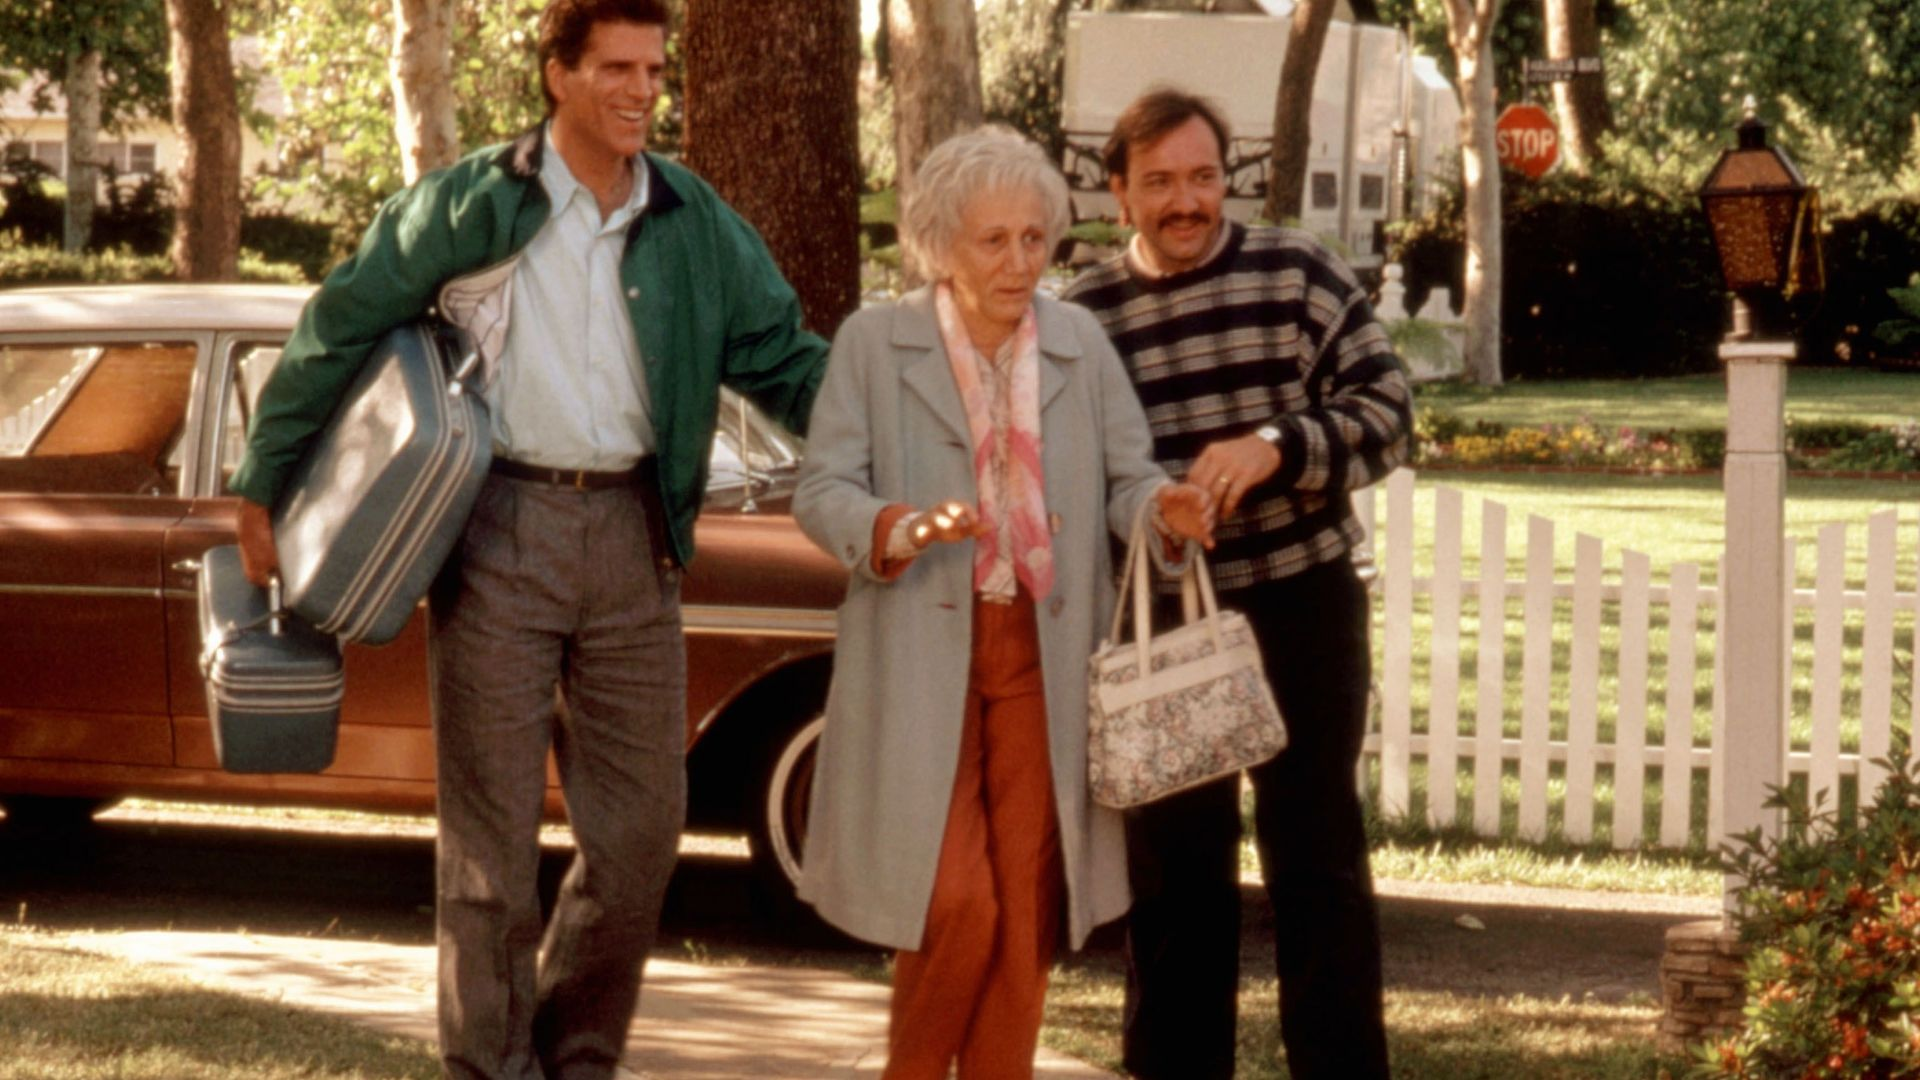 DAD, Ted Danson, Olympia Dukakis, Kevin Spacey, 1989.